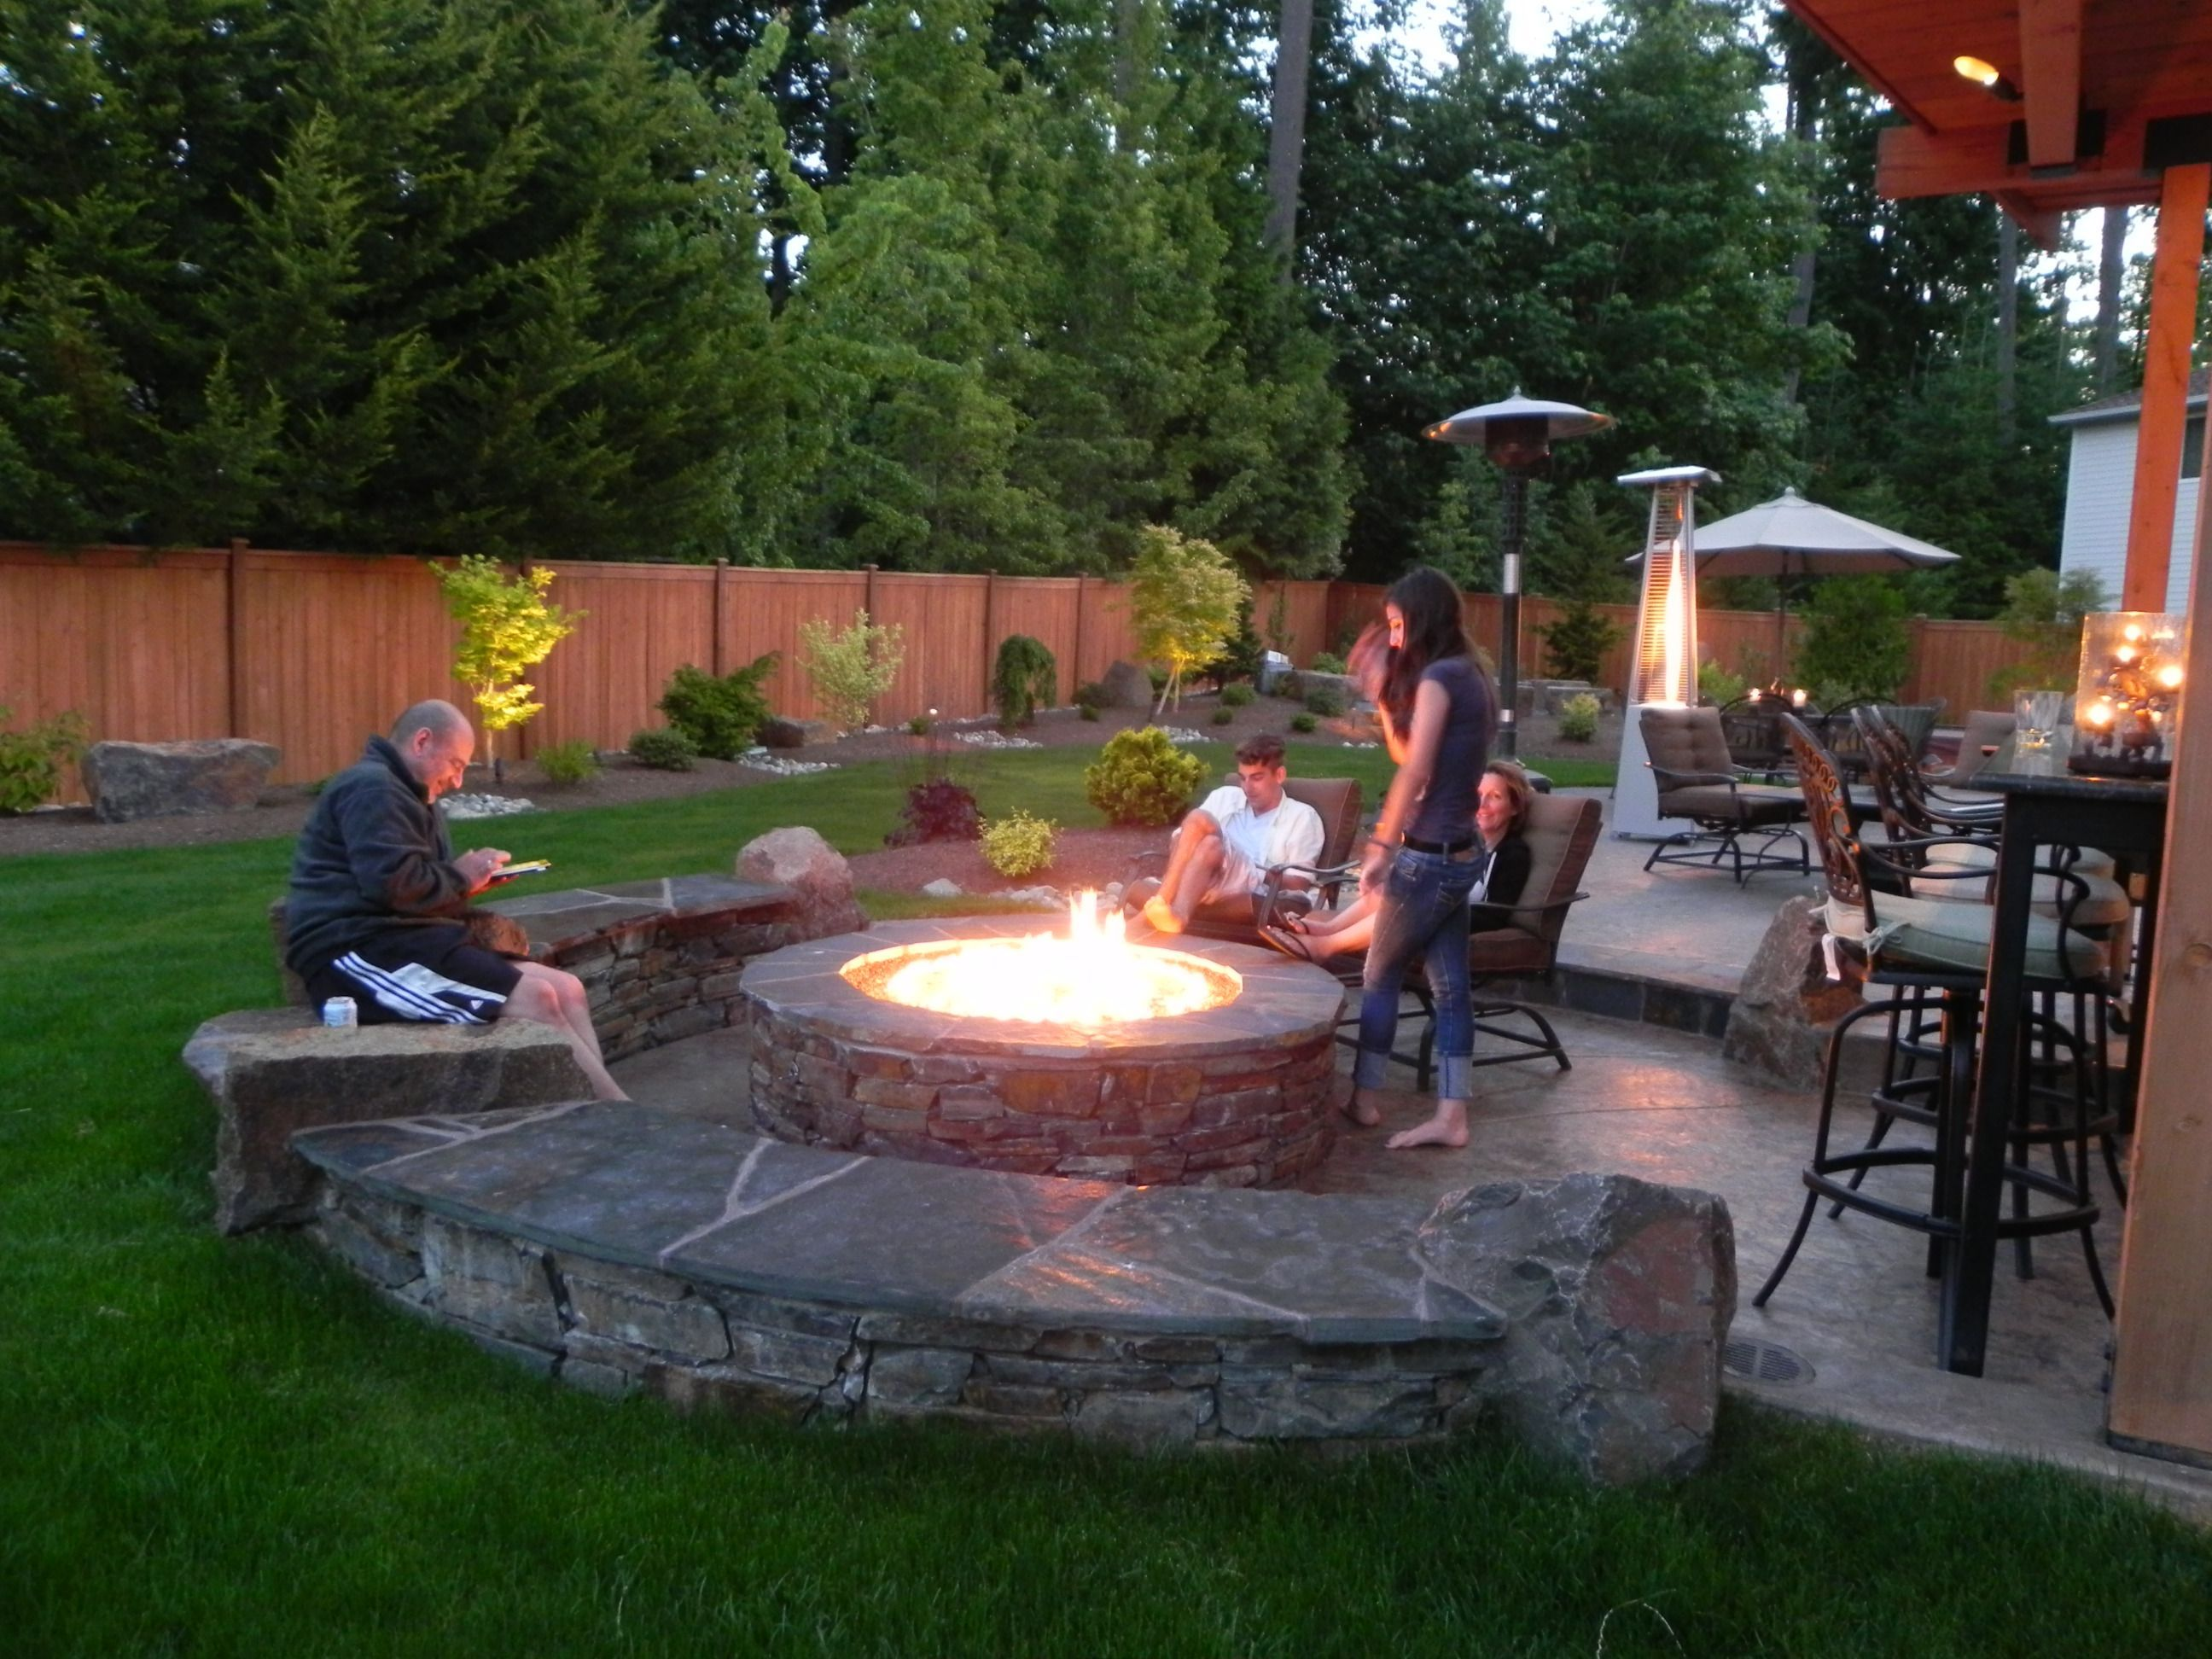 garden design with diy backyard landscaping and wood patio ideas ... - Patio Designs With Fire Pit Pictures